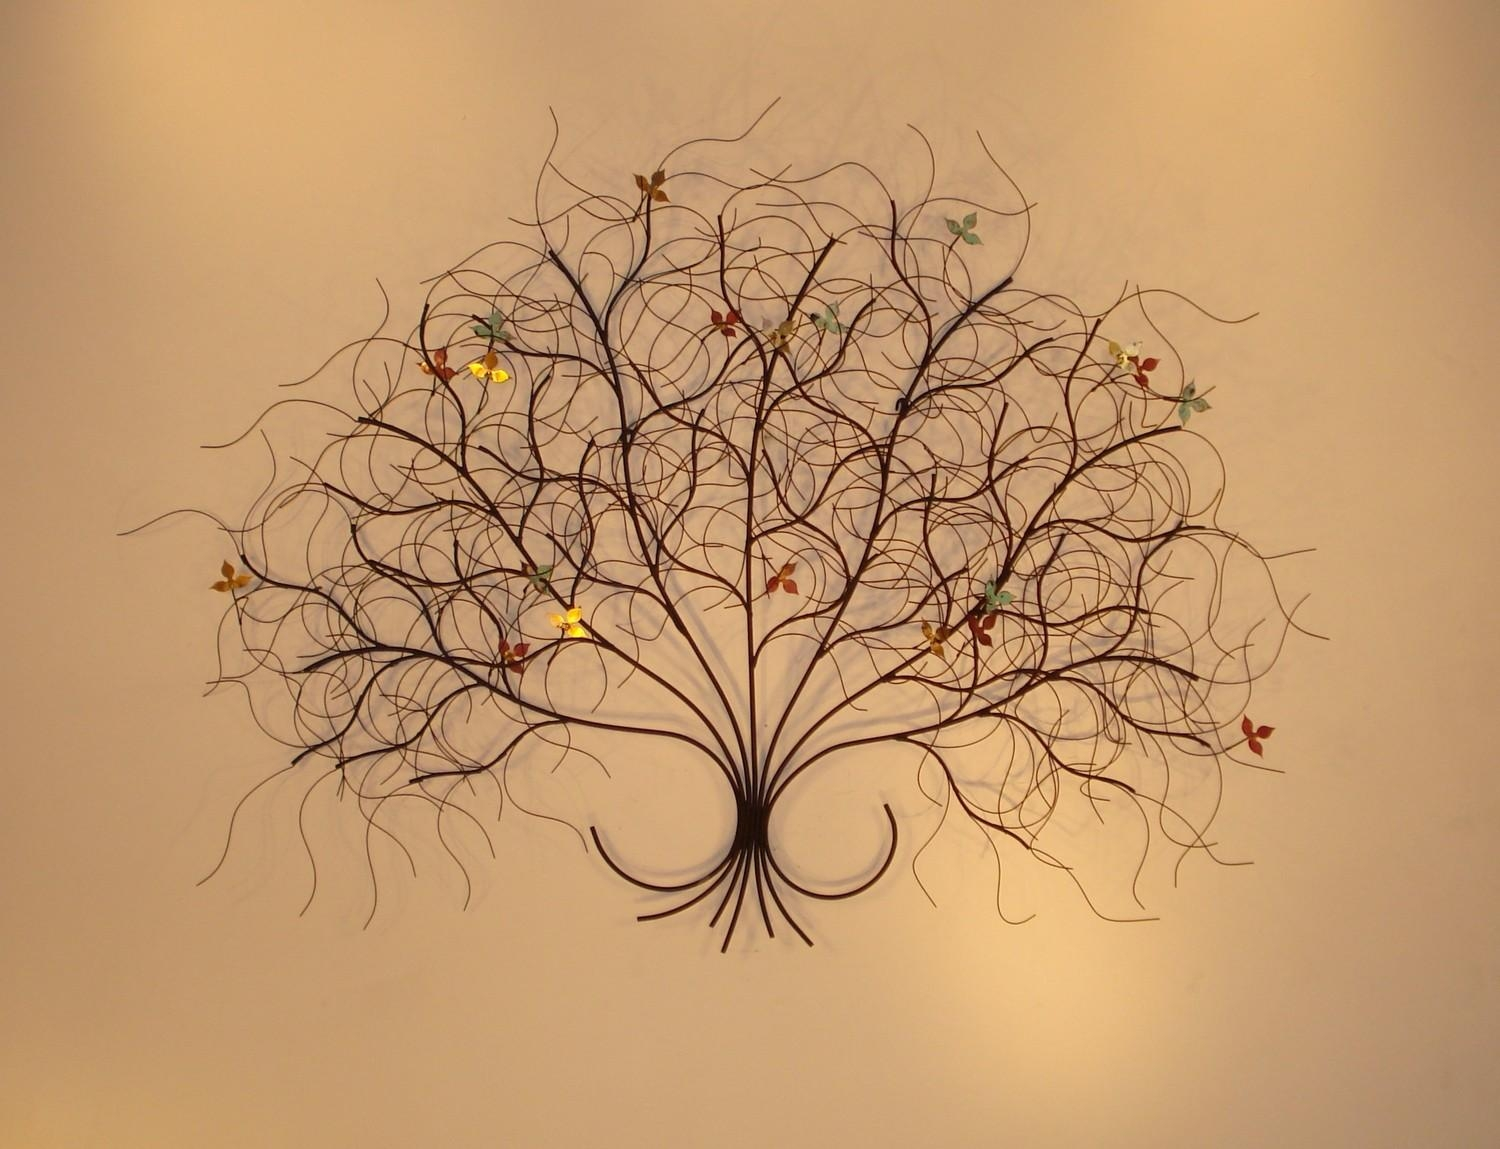 Metal Wall Sculptures And Wall Art – Branches | Gurtan Designs With Regard To Tree Wall Art Sculpture (Image 12 of 20)